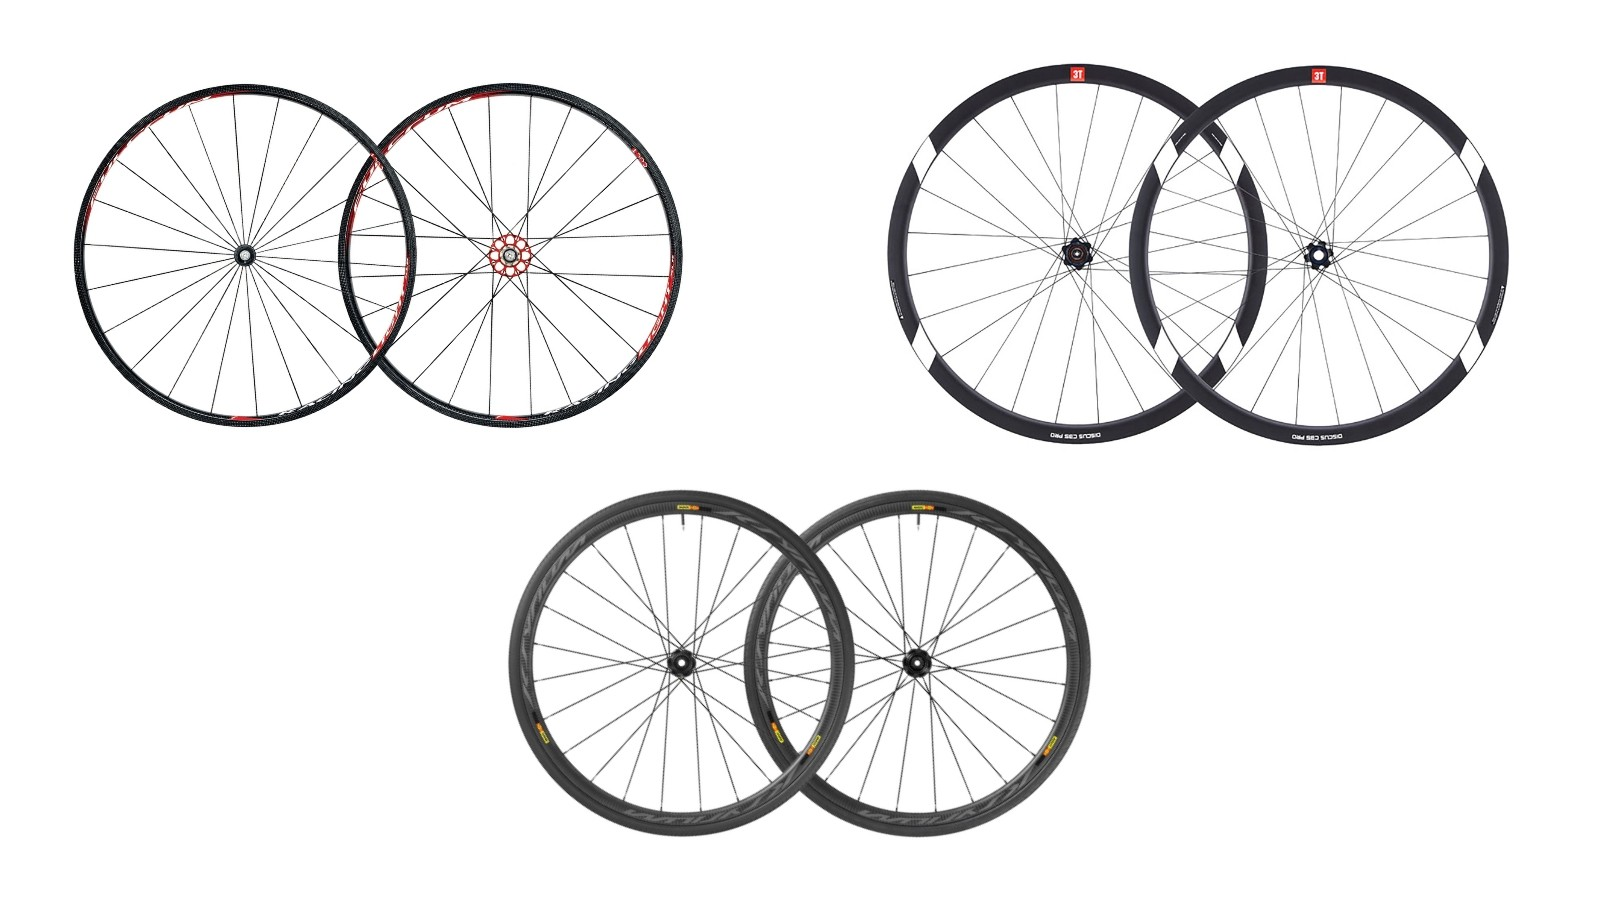 There are some serious bargains to be had on wheelsets at Chain Reaction Cycles right now